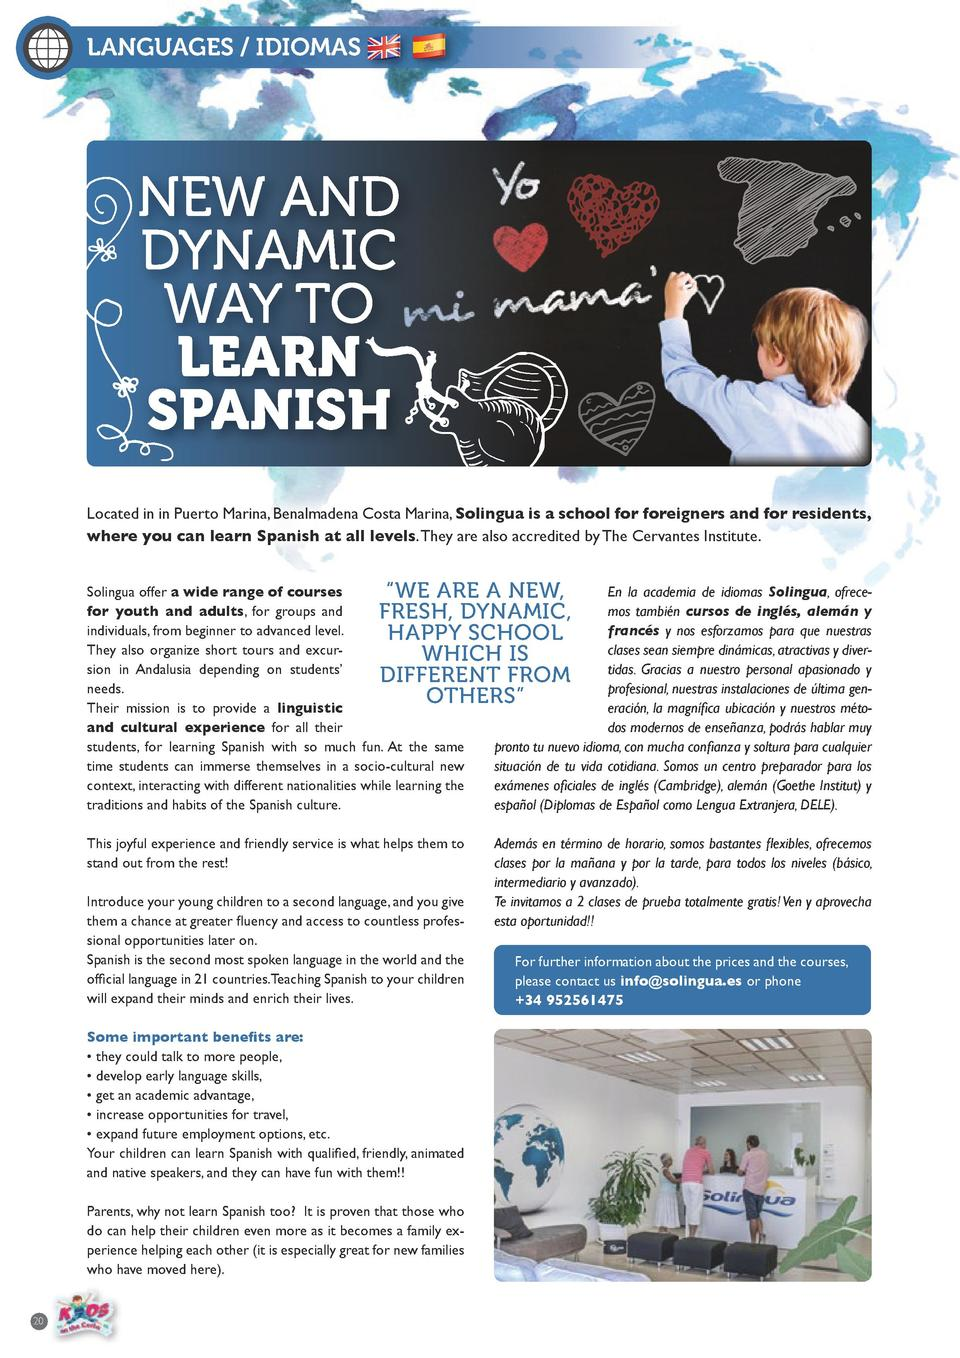 LANGUAGES   IDIOMAS  NEW AND DYNAMIC WAY TO LEARN SPANISH Located in in Puerto Marina, Benalmadena Costa Marina, Solingua ...